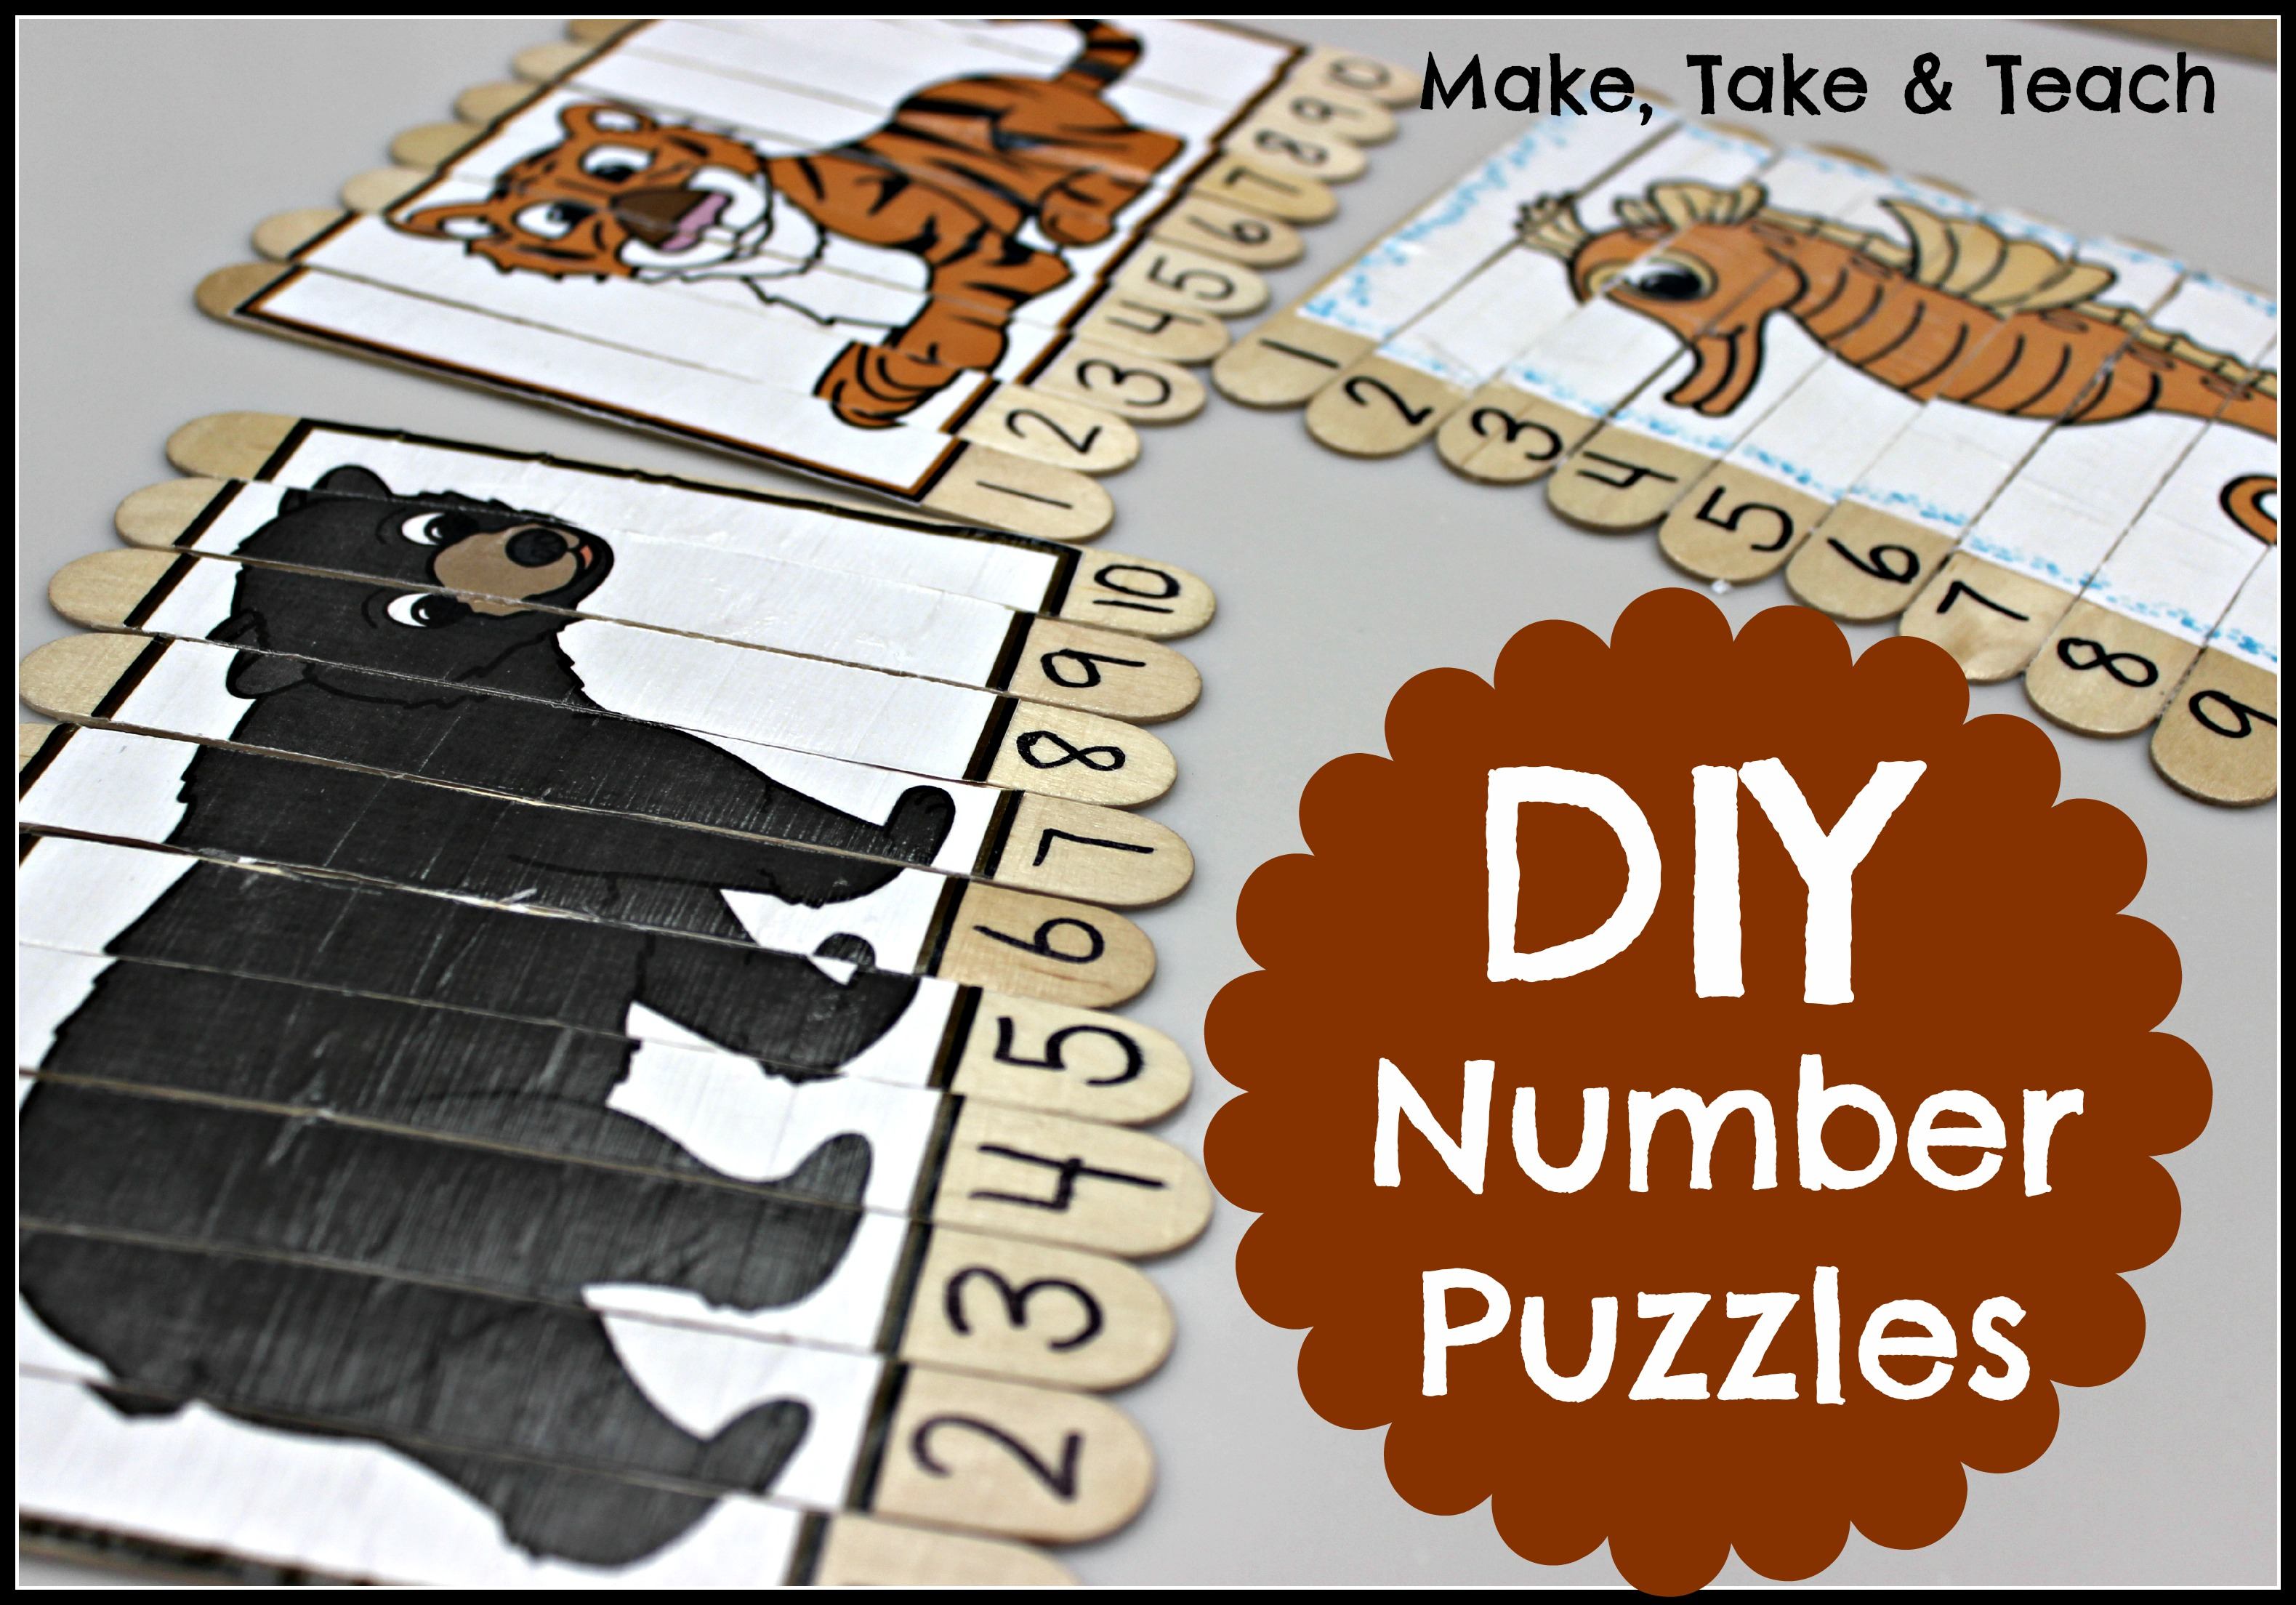 Diy Number Puzzles